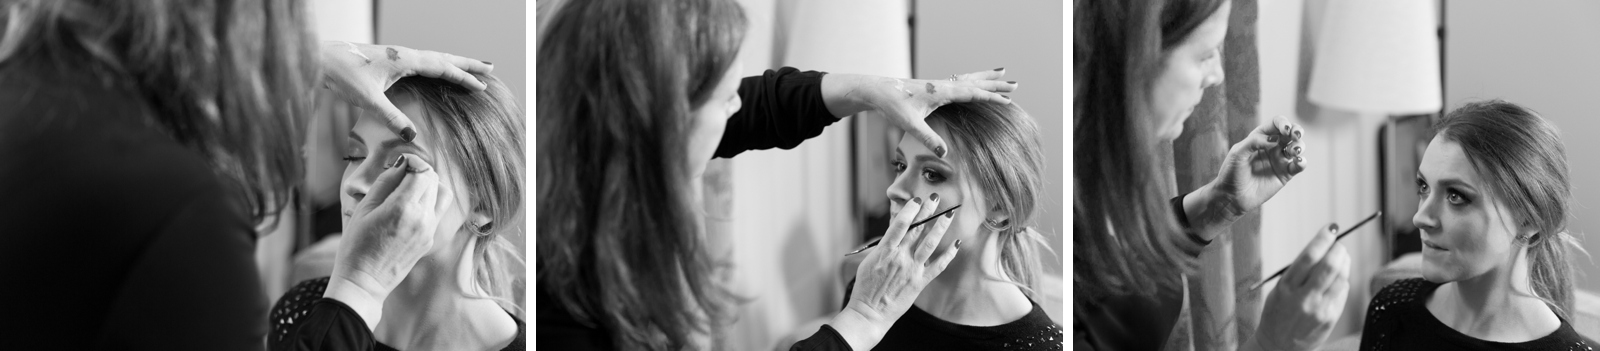 Preparing for the bridal fashion shoot at Hargate Hall near Buxton in Derbyshire